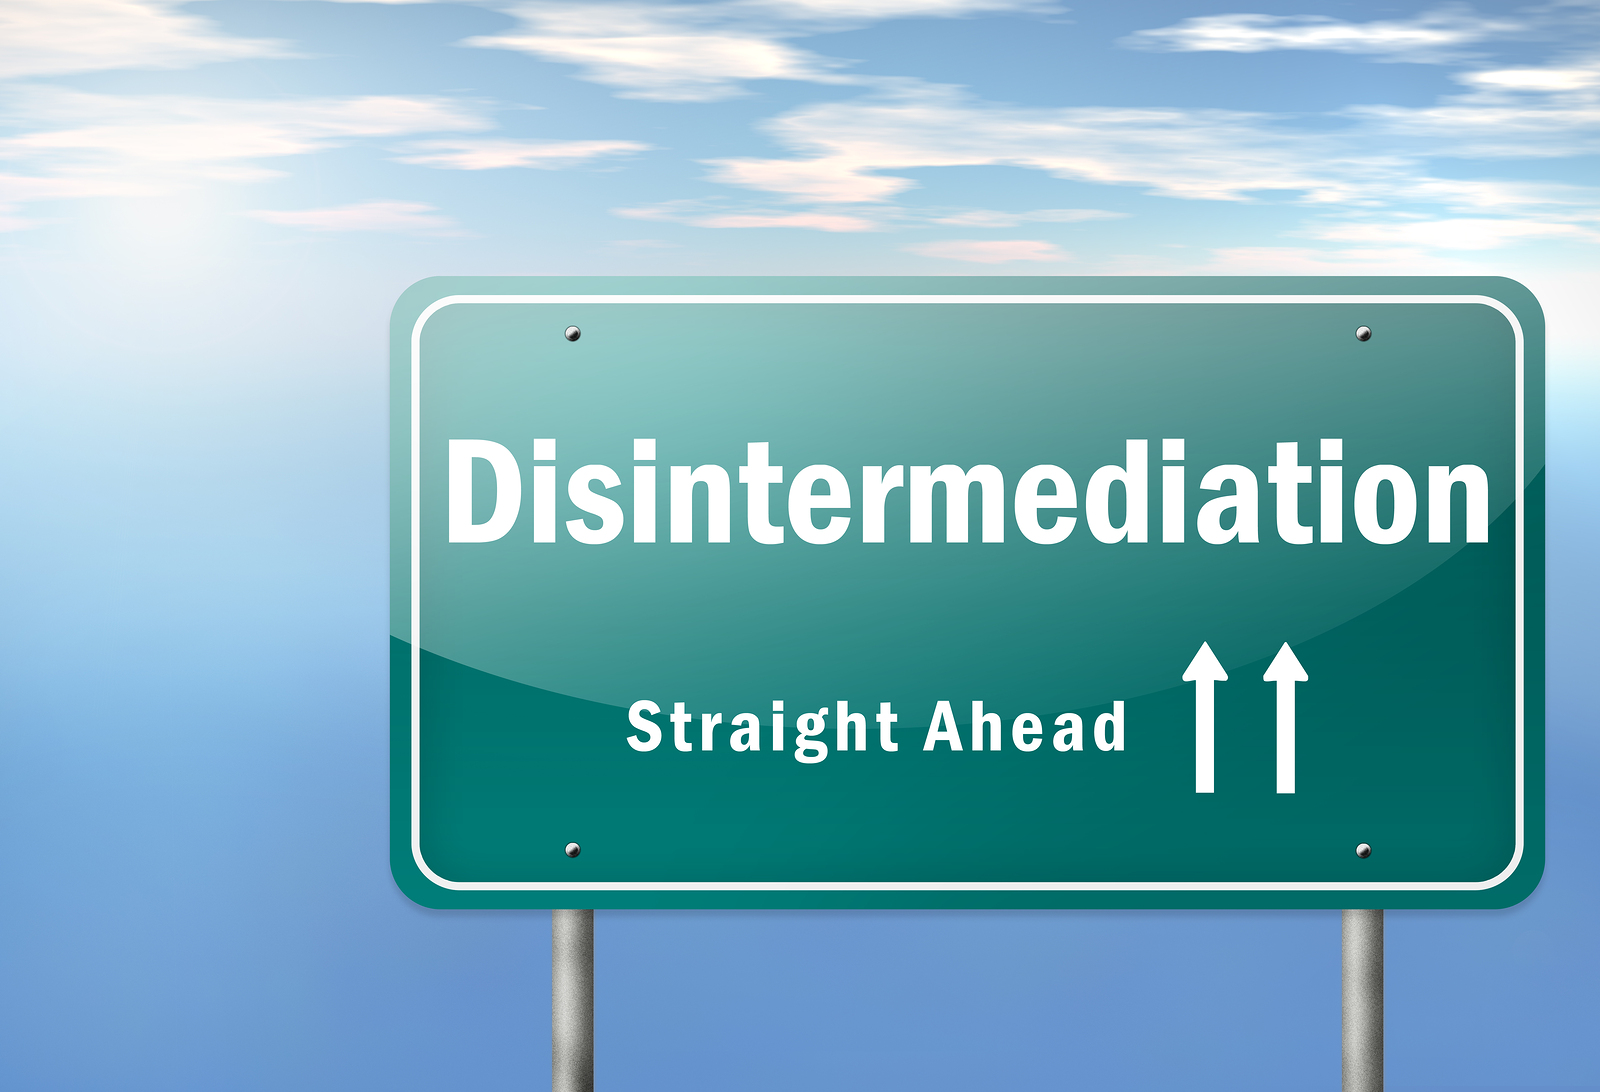 Disintermediation ahead!